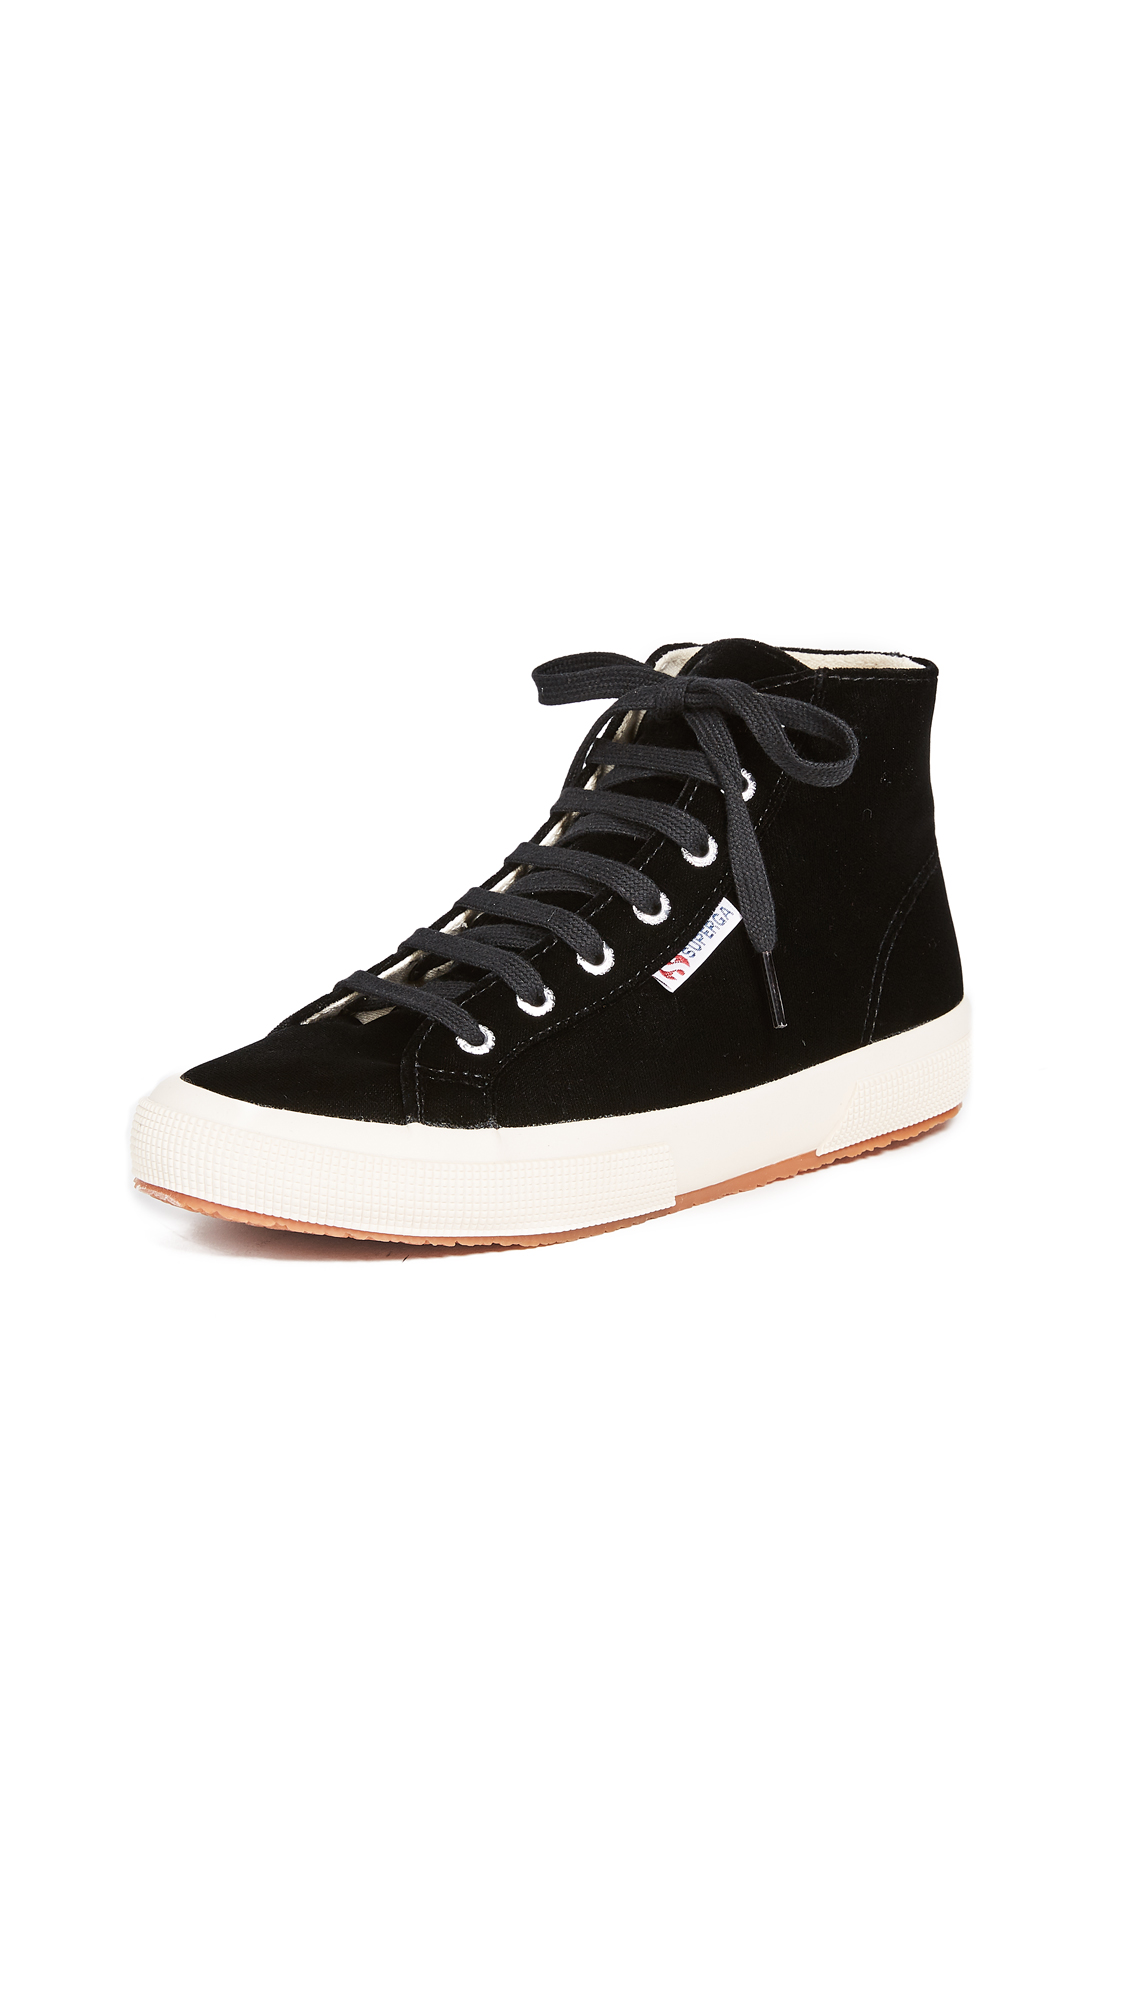 Superga 2795 Velvet High Top Sneakers - Black